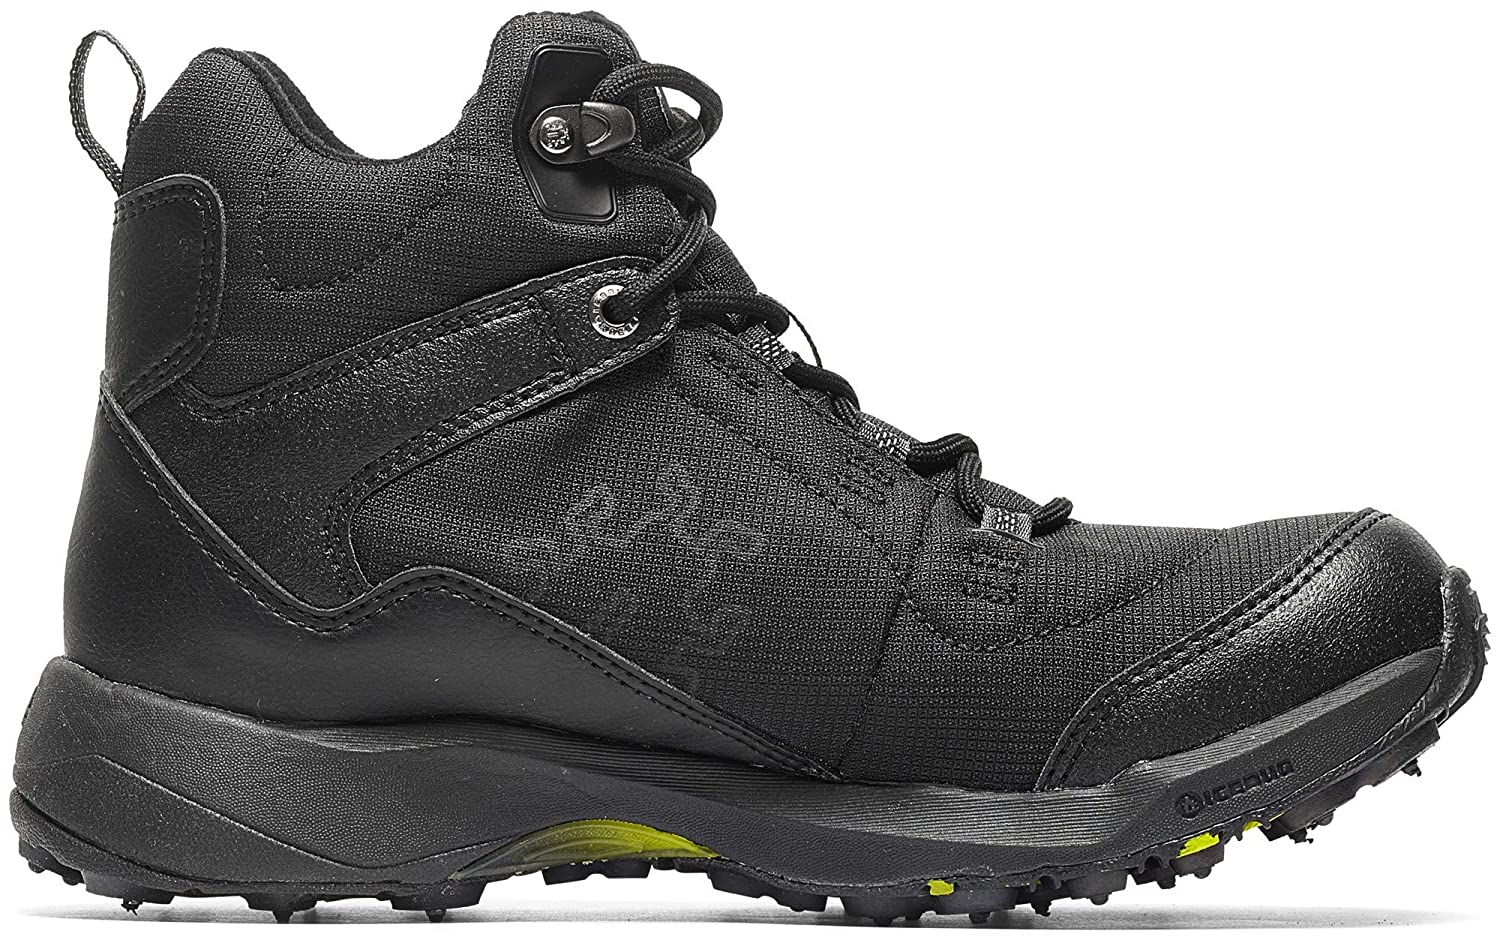 Icebug Gore-TEX Waterproof Insulated Boots for Men Pace2 BUGrip